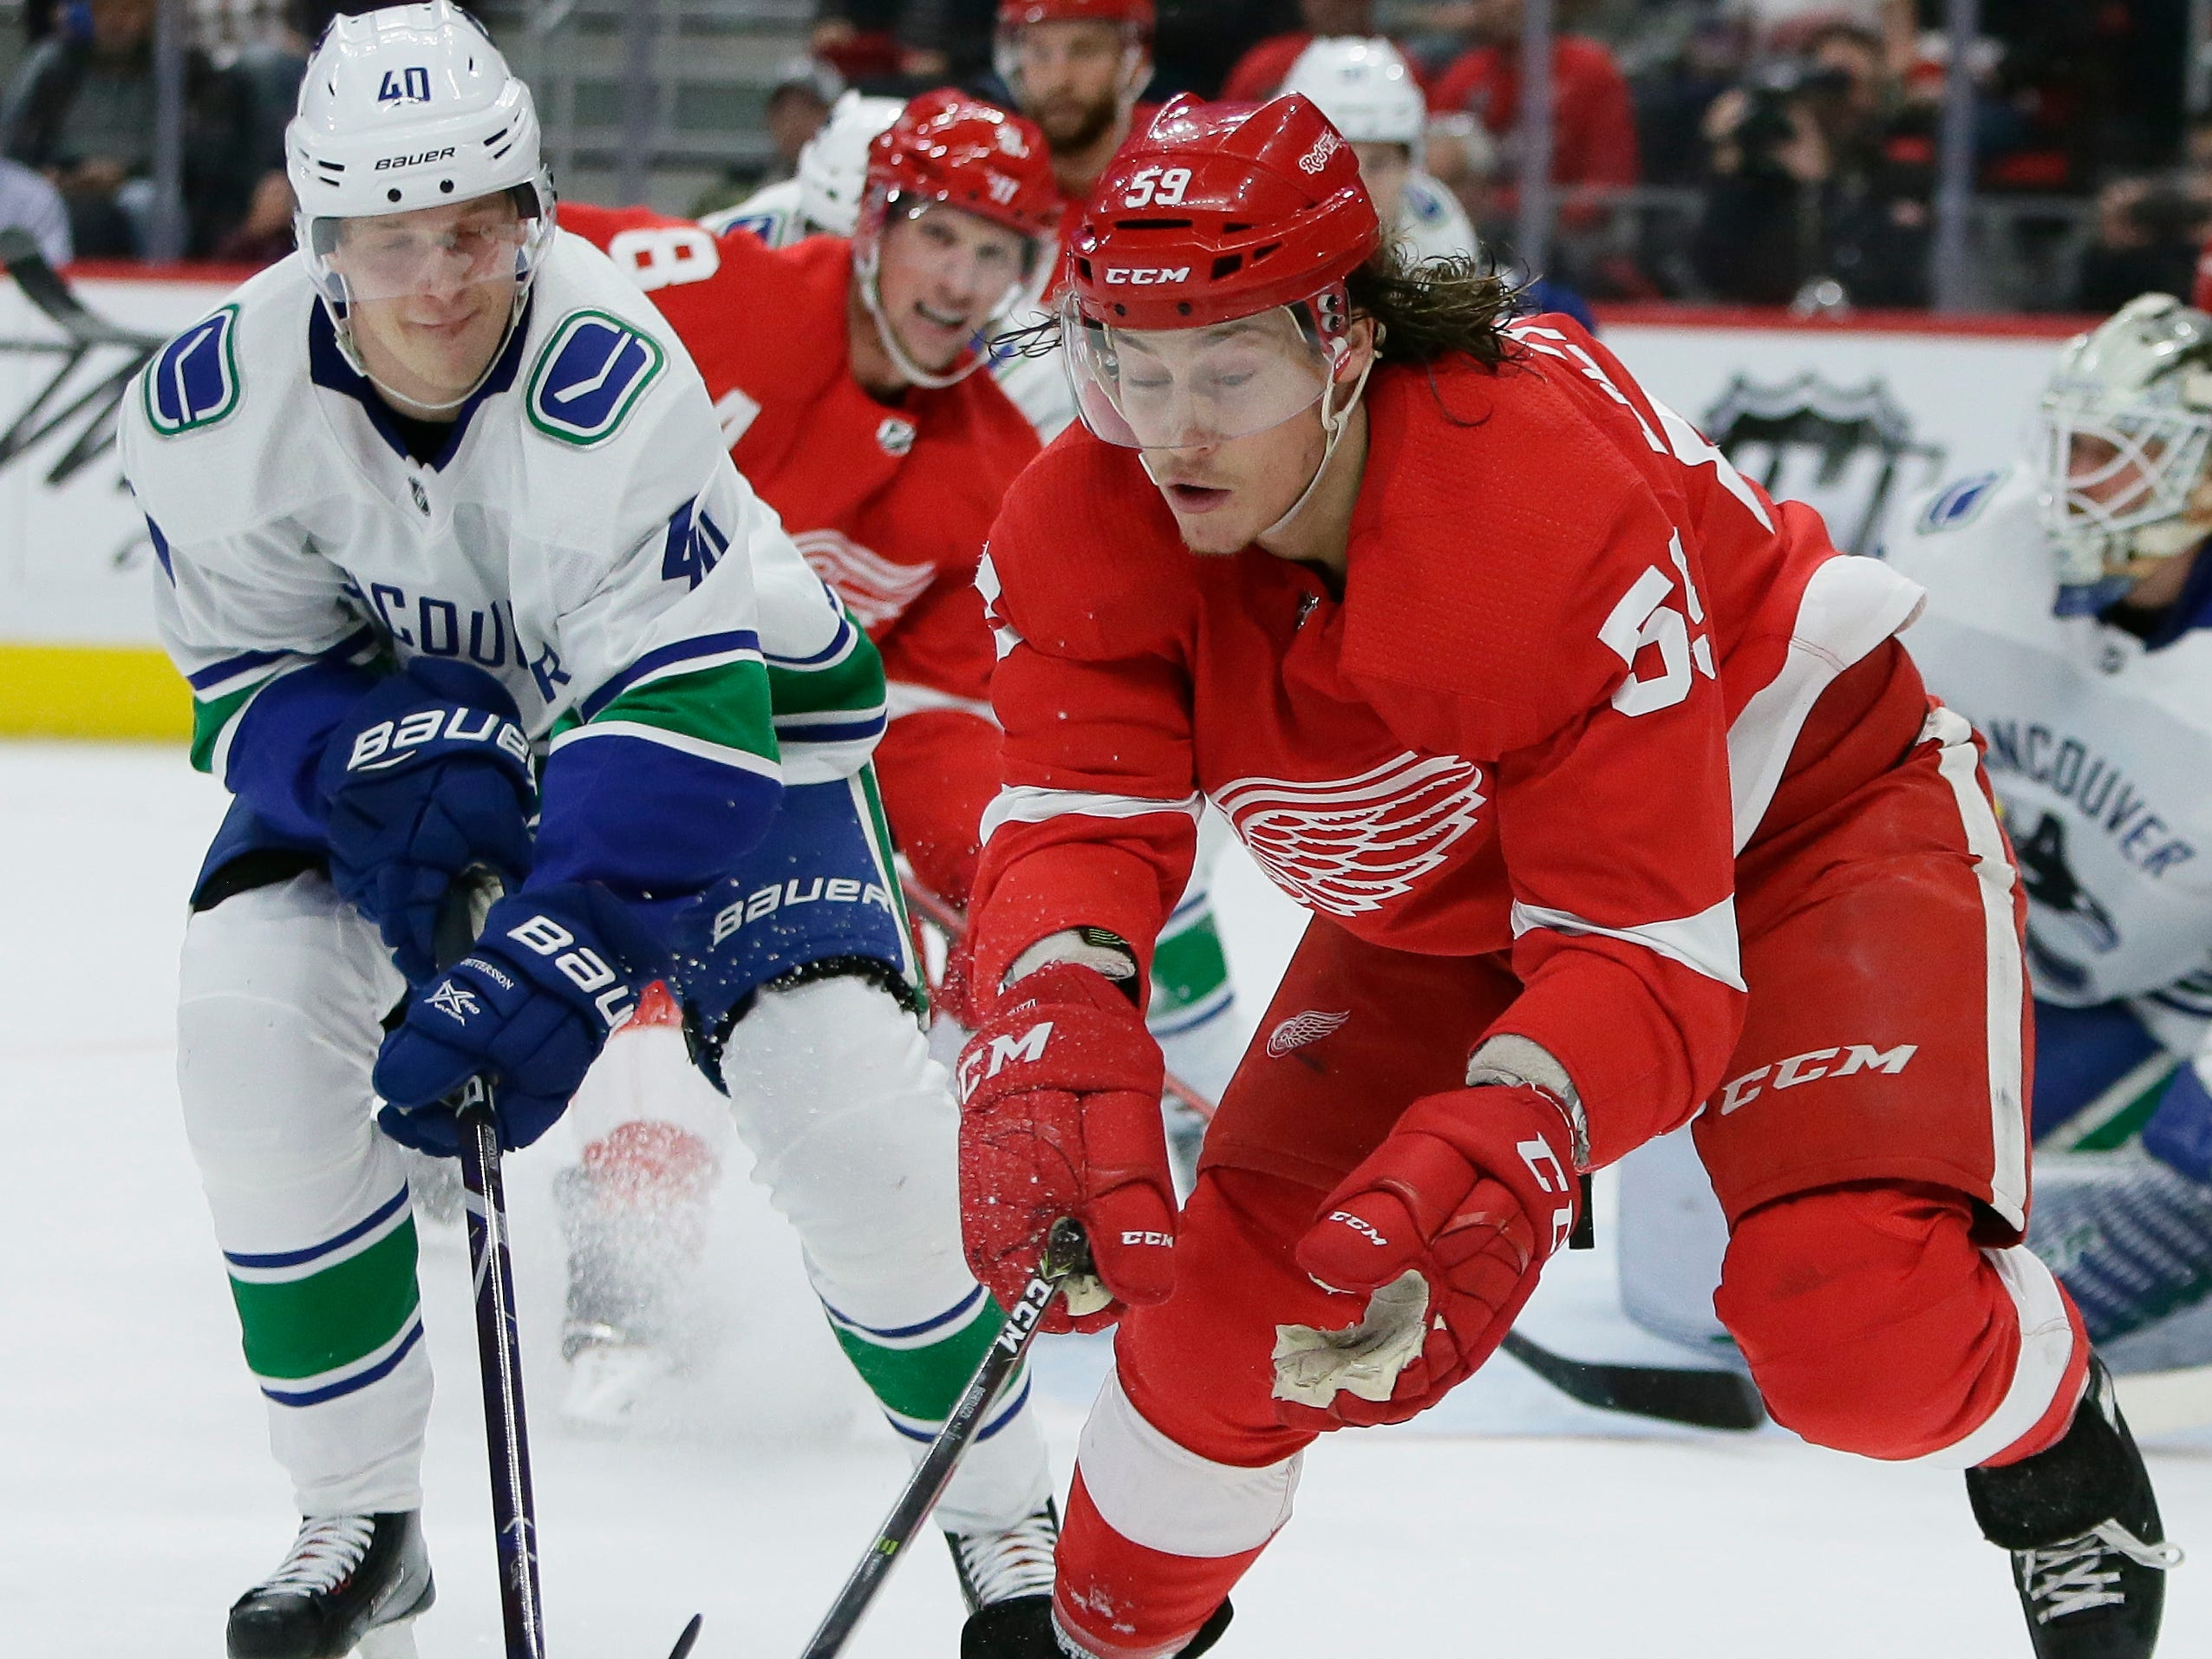 Detroit Red Wings left wing Tyler Bertuzzi (59) beats Vancouver Canucks center Elias Pettersson (40), of Sweden, to the puck during the second period of an NHL hockey game Tuesday, Nov. 6, 2018, in Detroit.